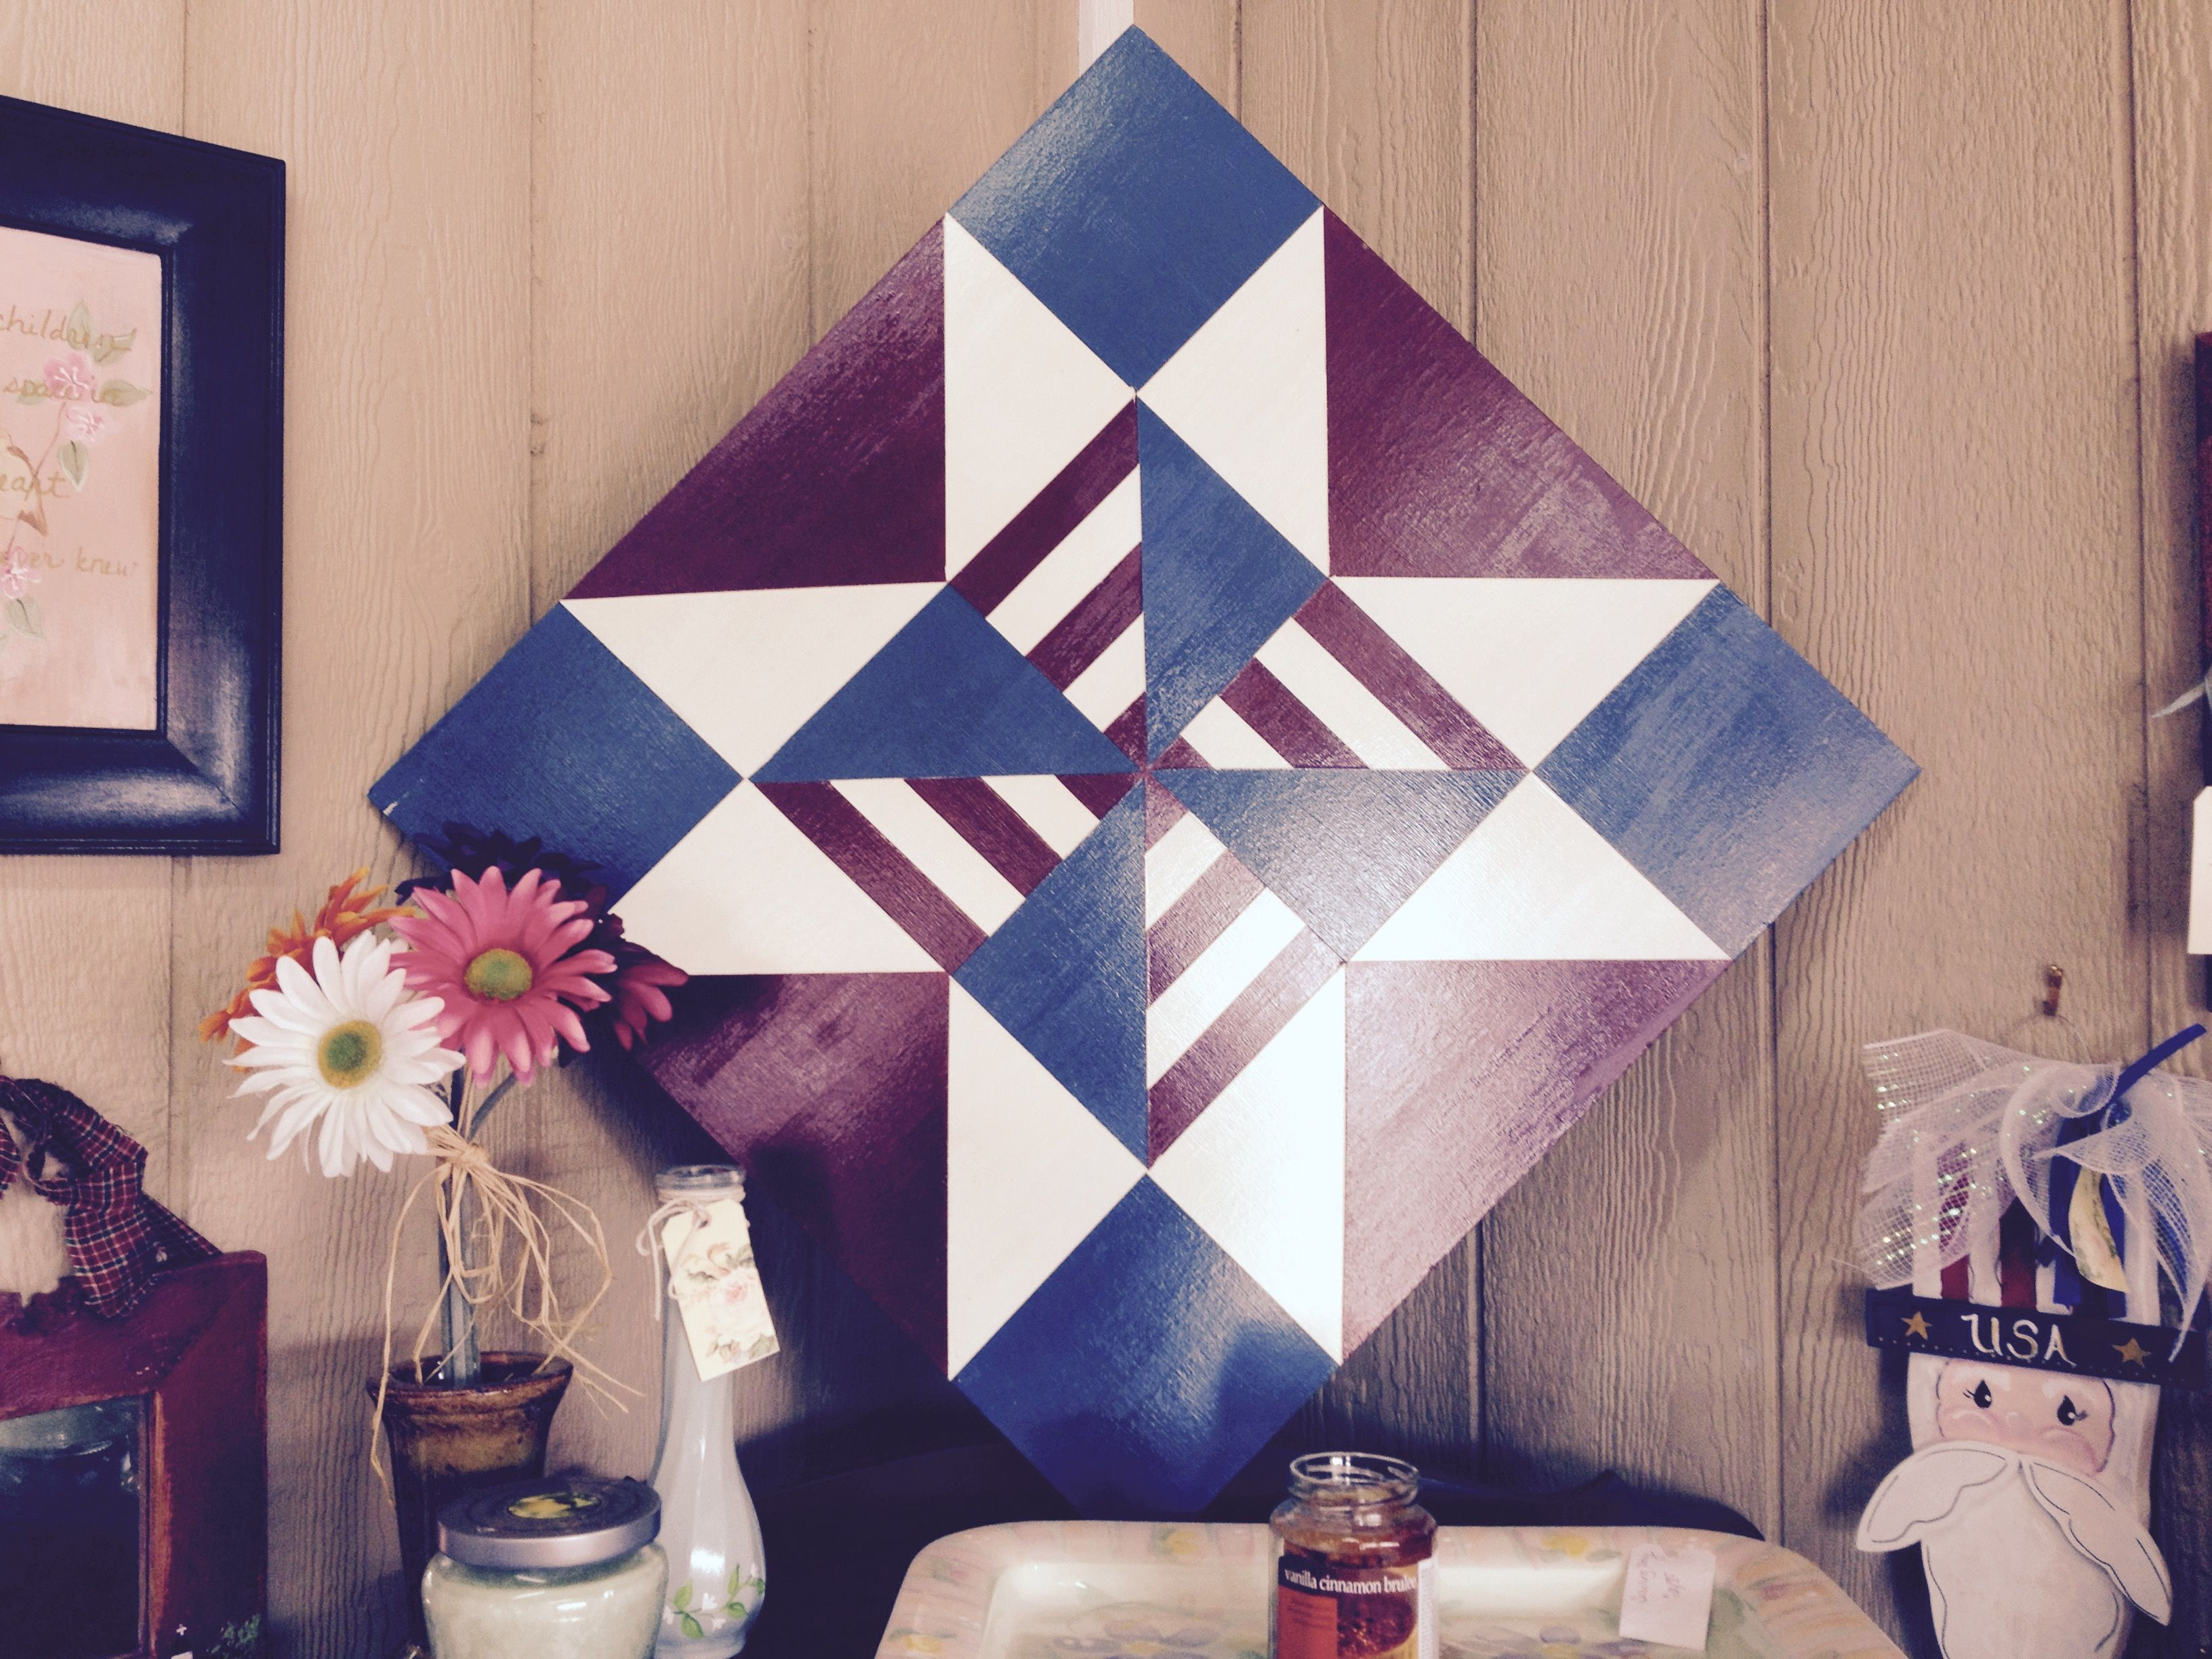 Pin by christine burns on barn quilts pinterest explore barn quilts quilt designs and more biocorpaavc Images